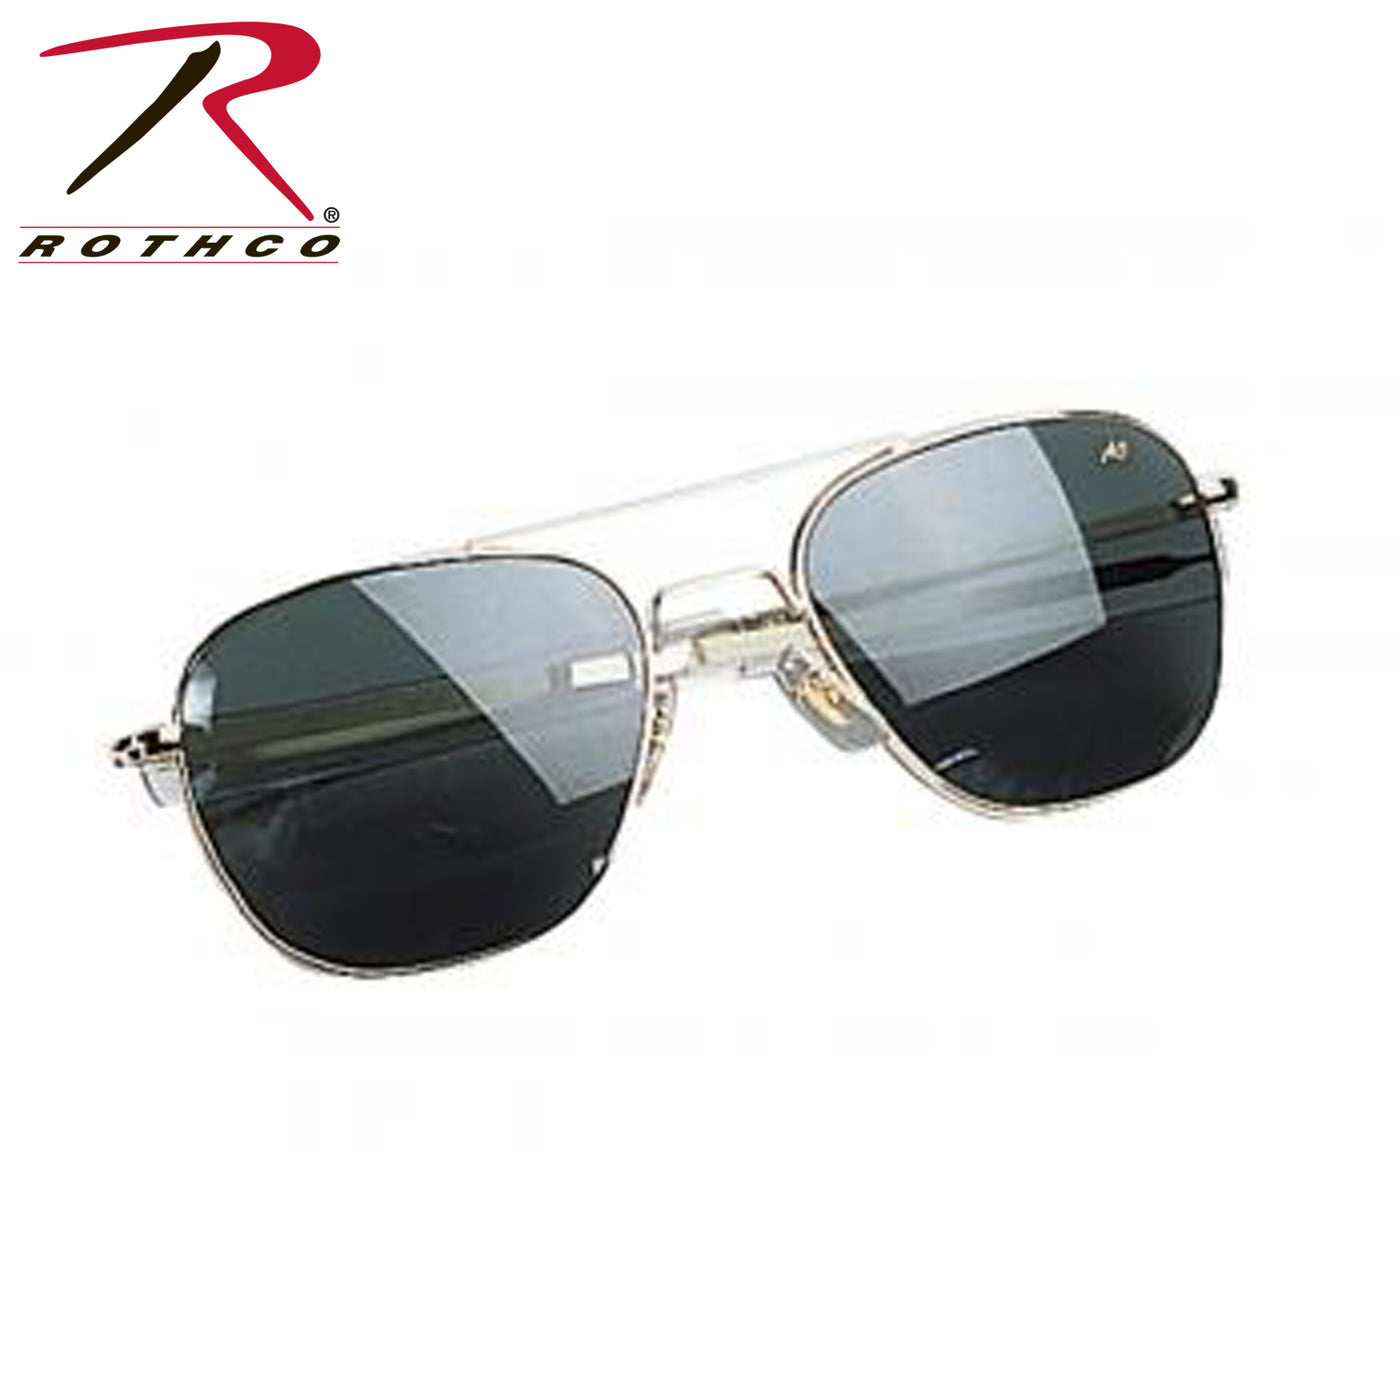 5925fc58bc41 ... American Optical 52 MM Polarized Pilots Sunglasses - Trailside Outfitter